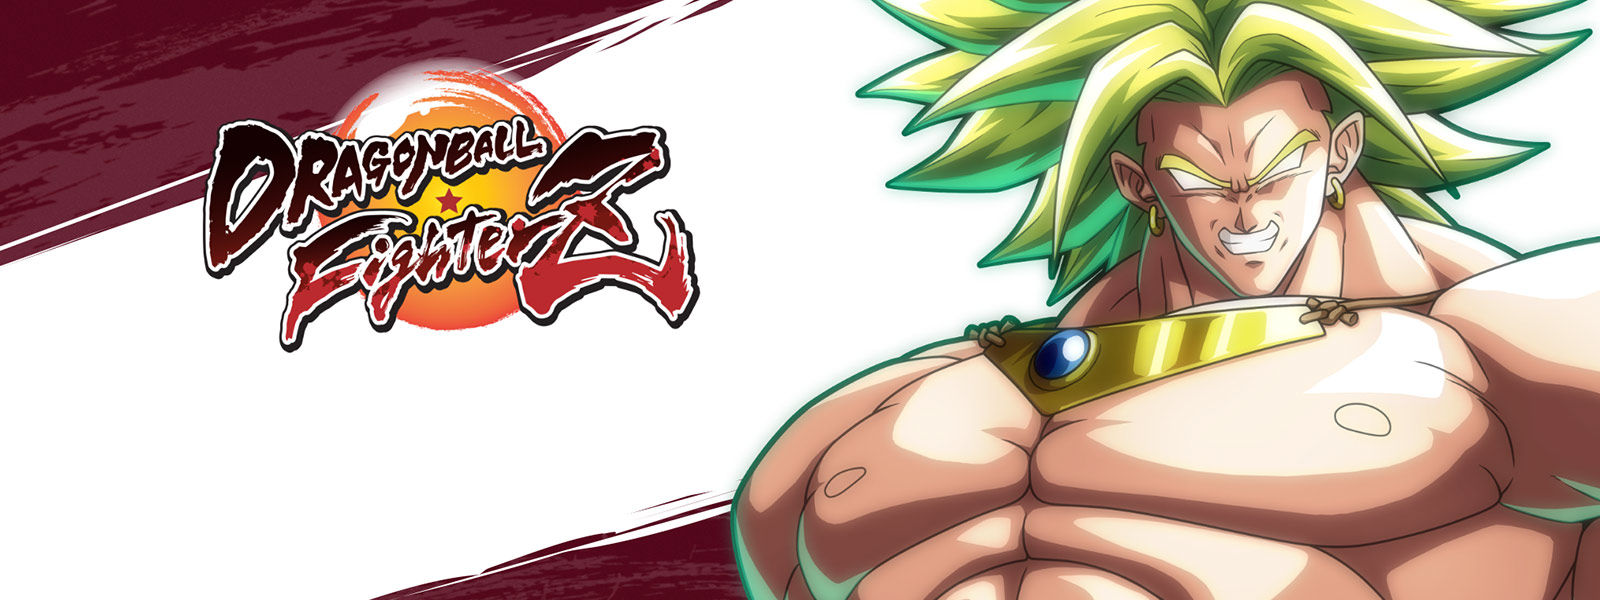 Dragon Ball FighterZ, vista frontale di Broly con il suo enorme torace